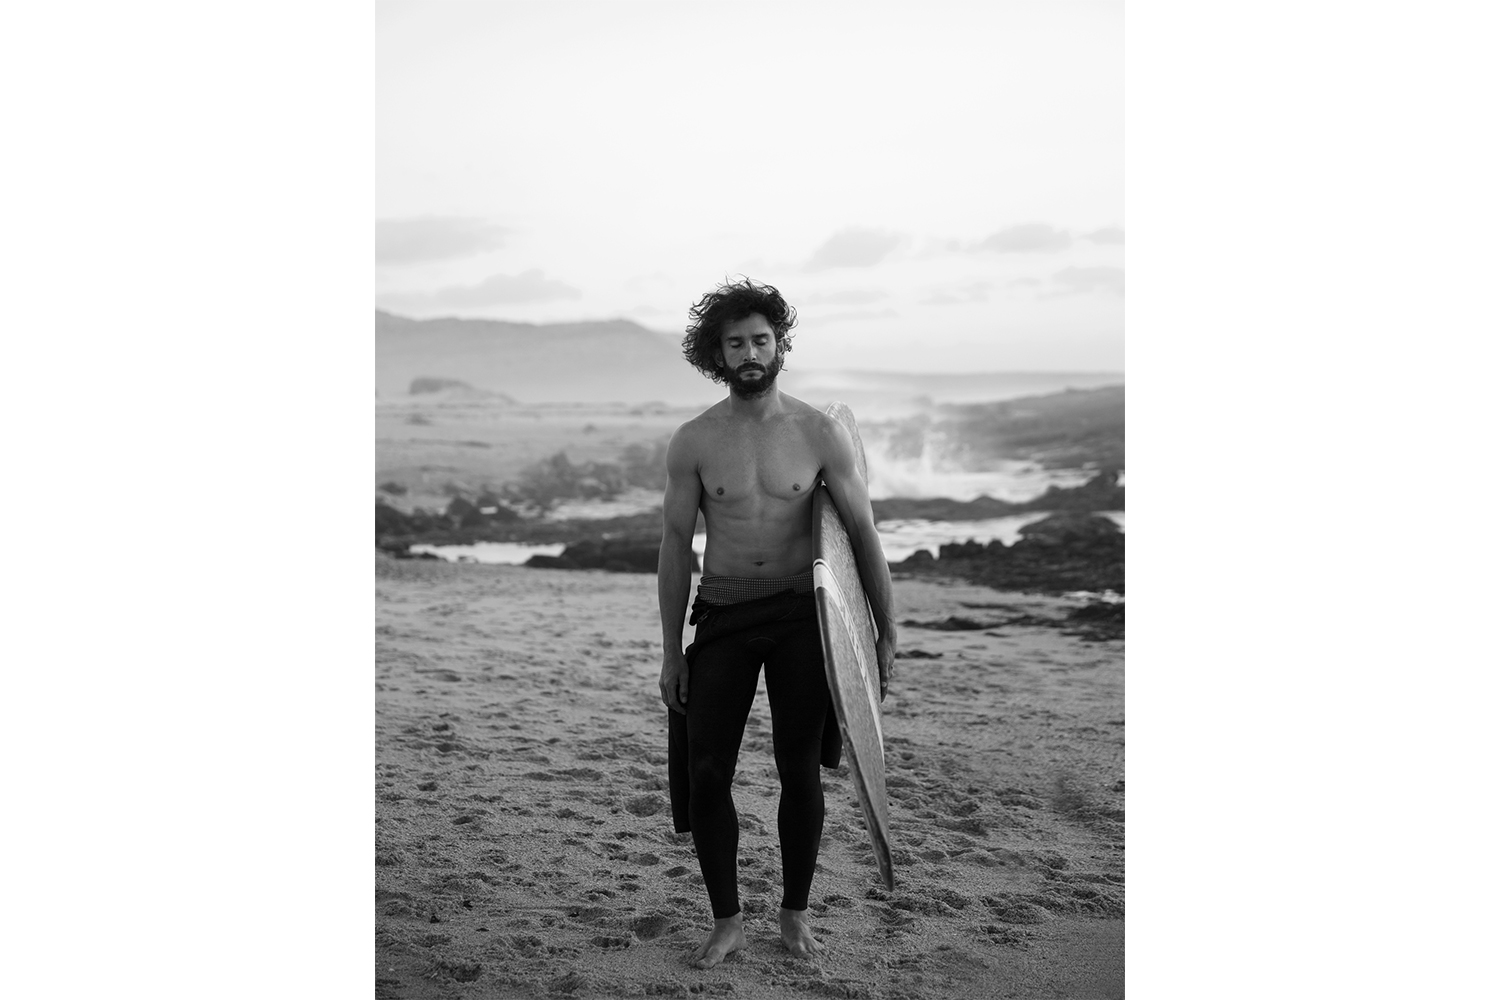 Surfer photographed in Capetown, South Africa.